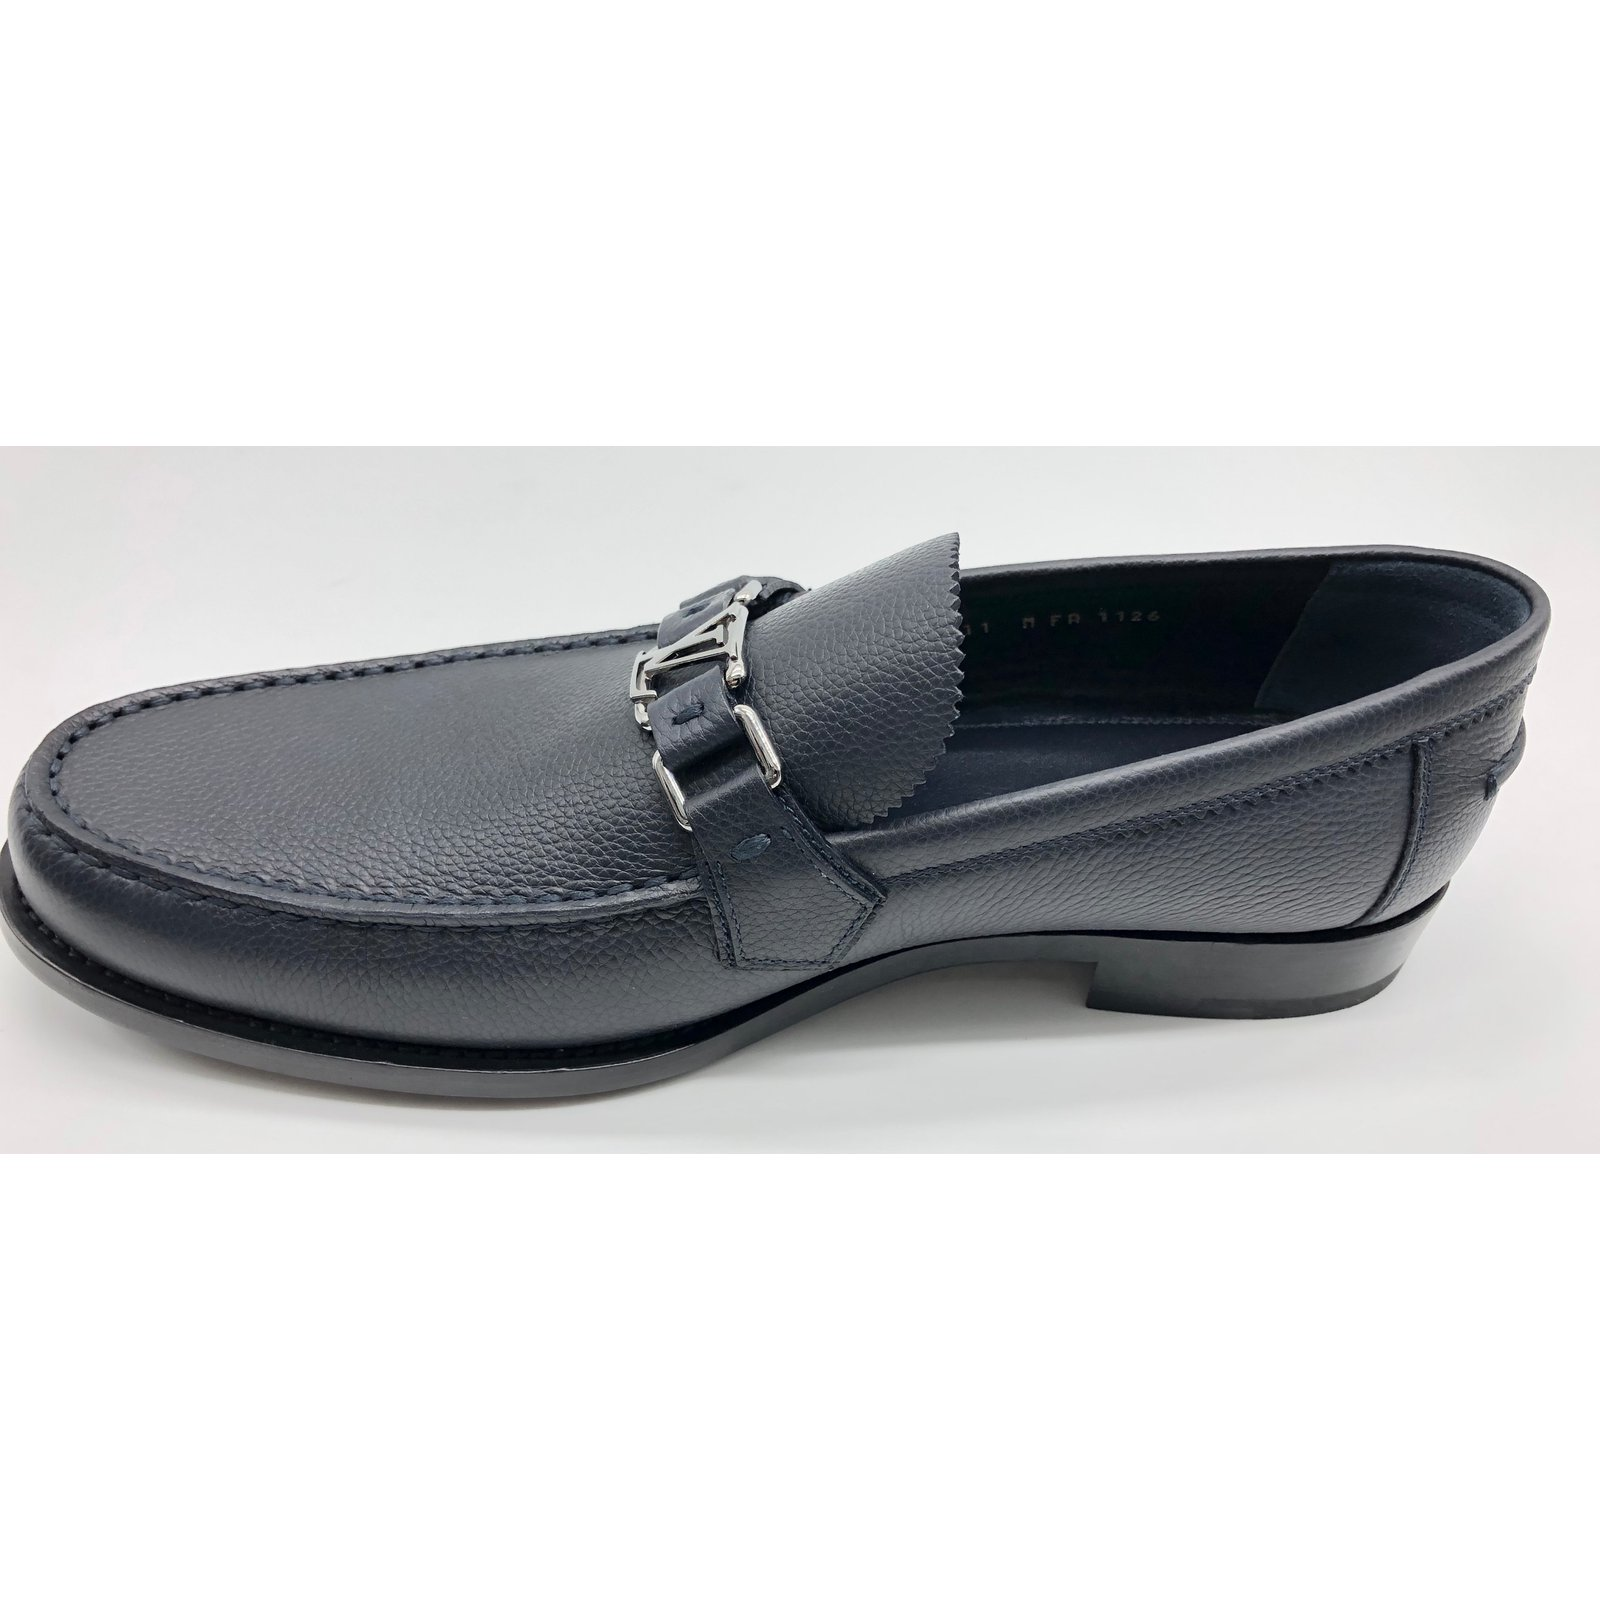 edd102dbf27f Louis Vuitton Loafer Loafers Slip ons Leather Navy blue ref.92114 - Joli  Closet